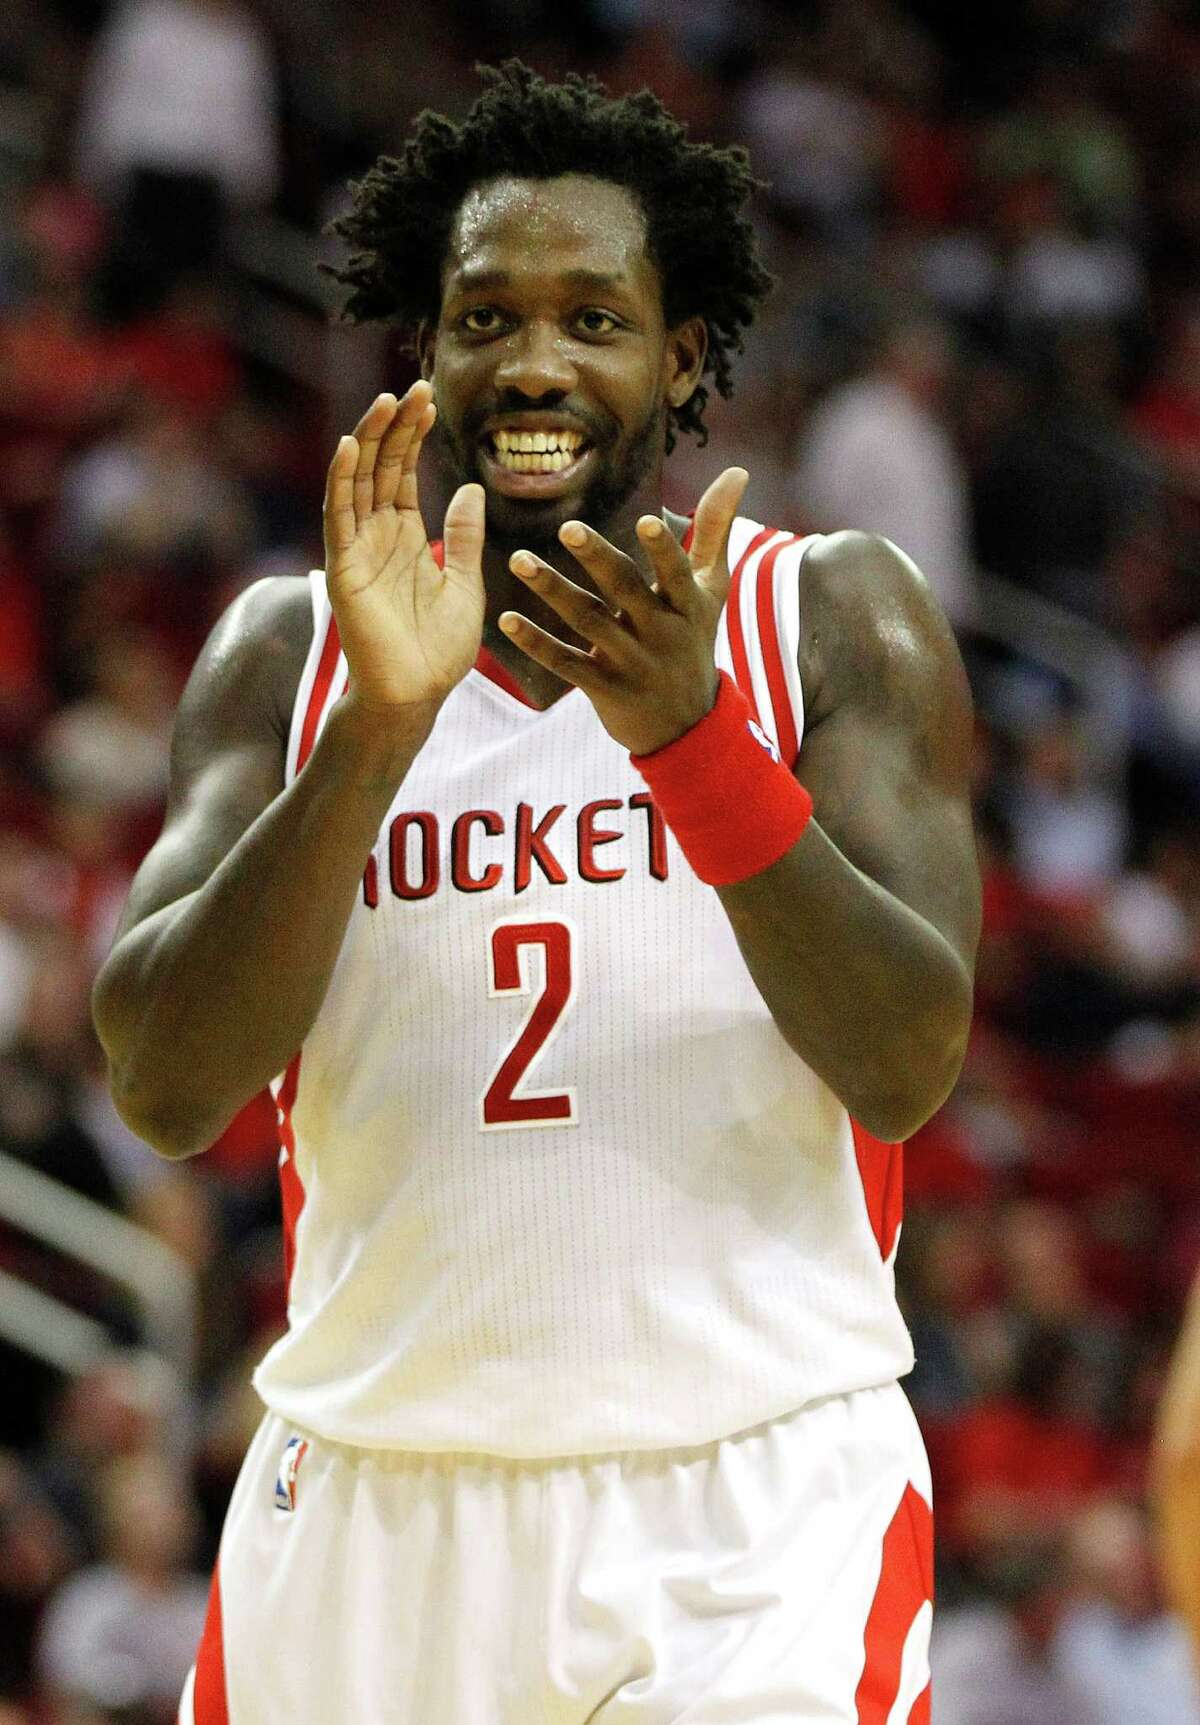 Houston Rockets guard Patrick Beverley (2) reacts during the first half of an NBA basketball game at Toyota Center, Thursday, March 31, 2016, in Houston. ( Karen Warren / Houston Chronicle )